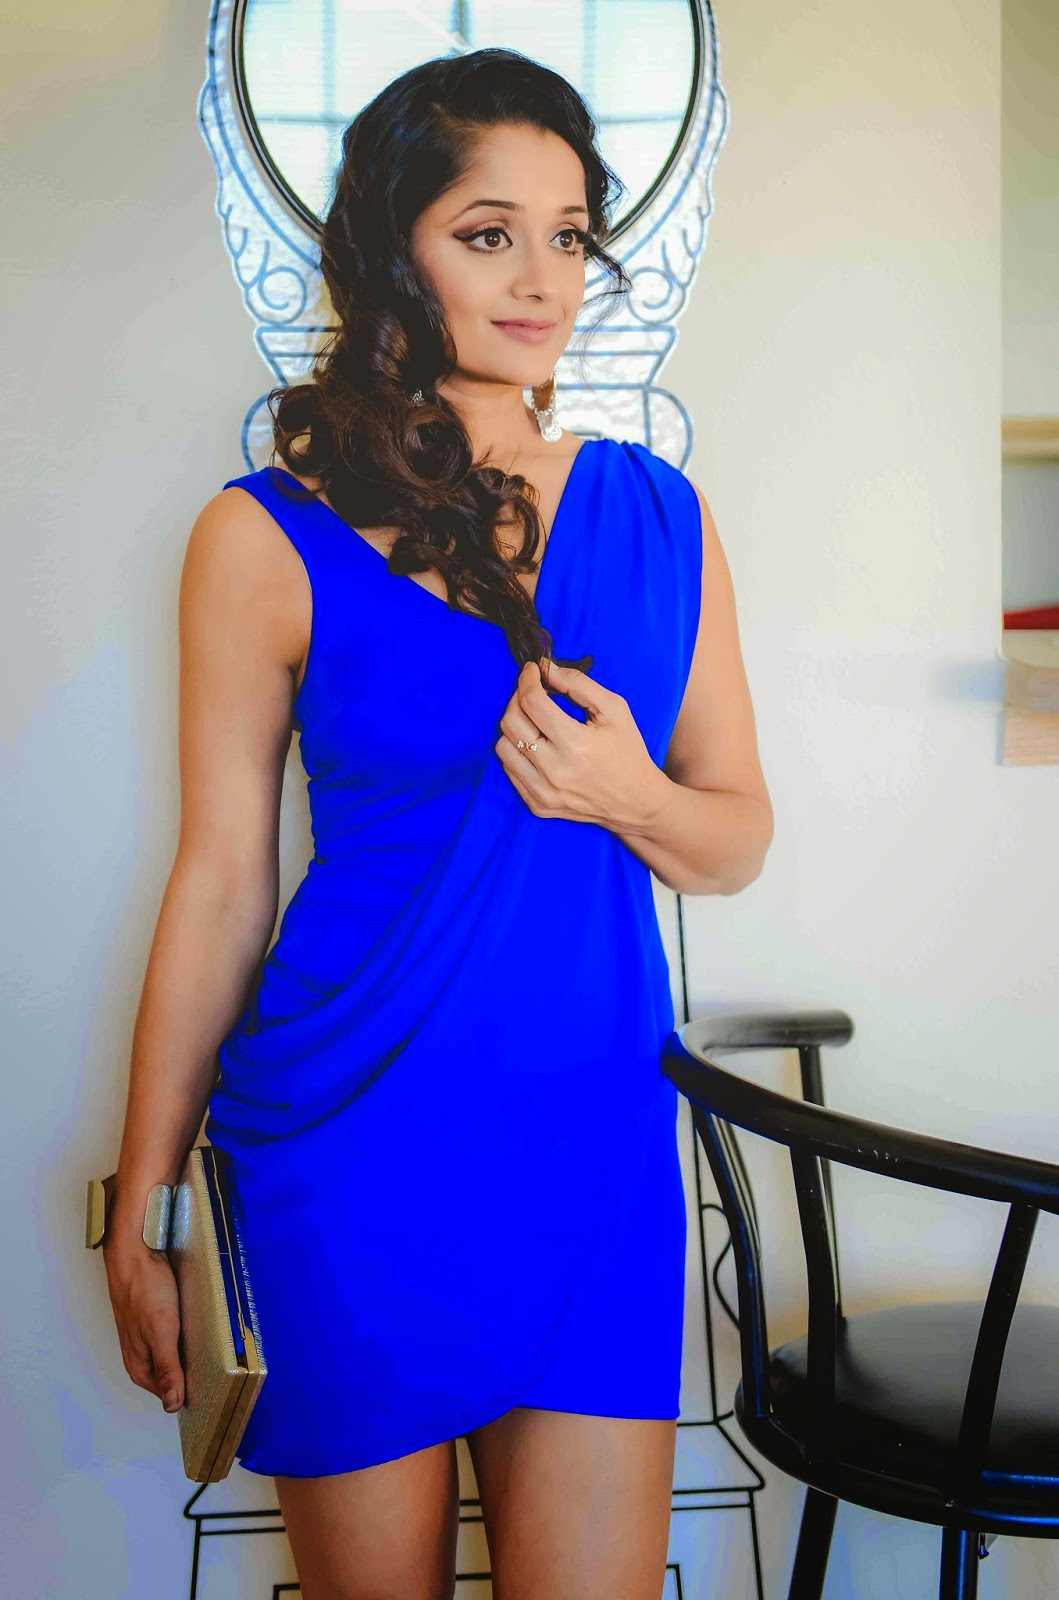 Indian Amercian mom, Indian fashion blogger, Fit mom, sexy blue dress, blue cocktail dress, Indian girl wearing a blue short dress